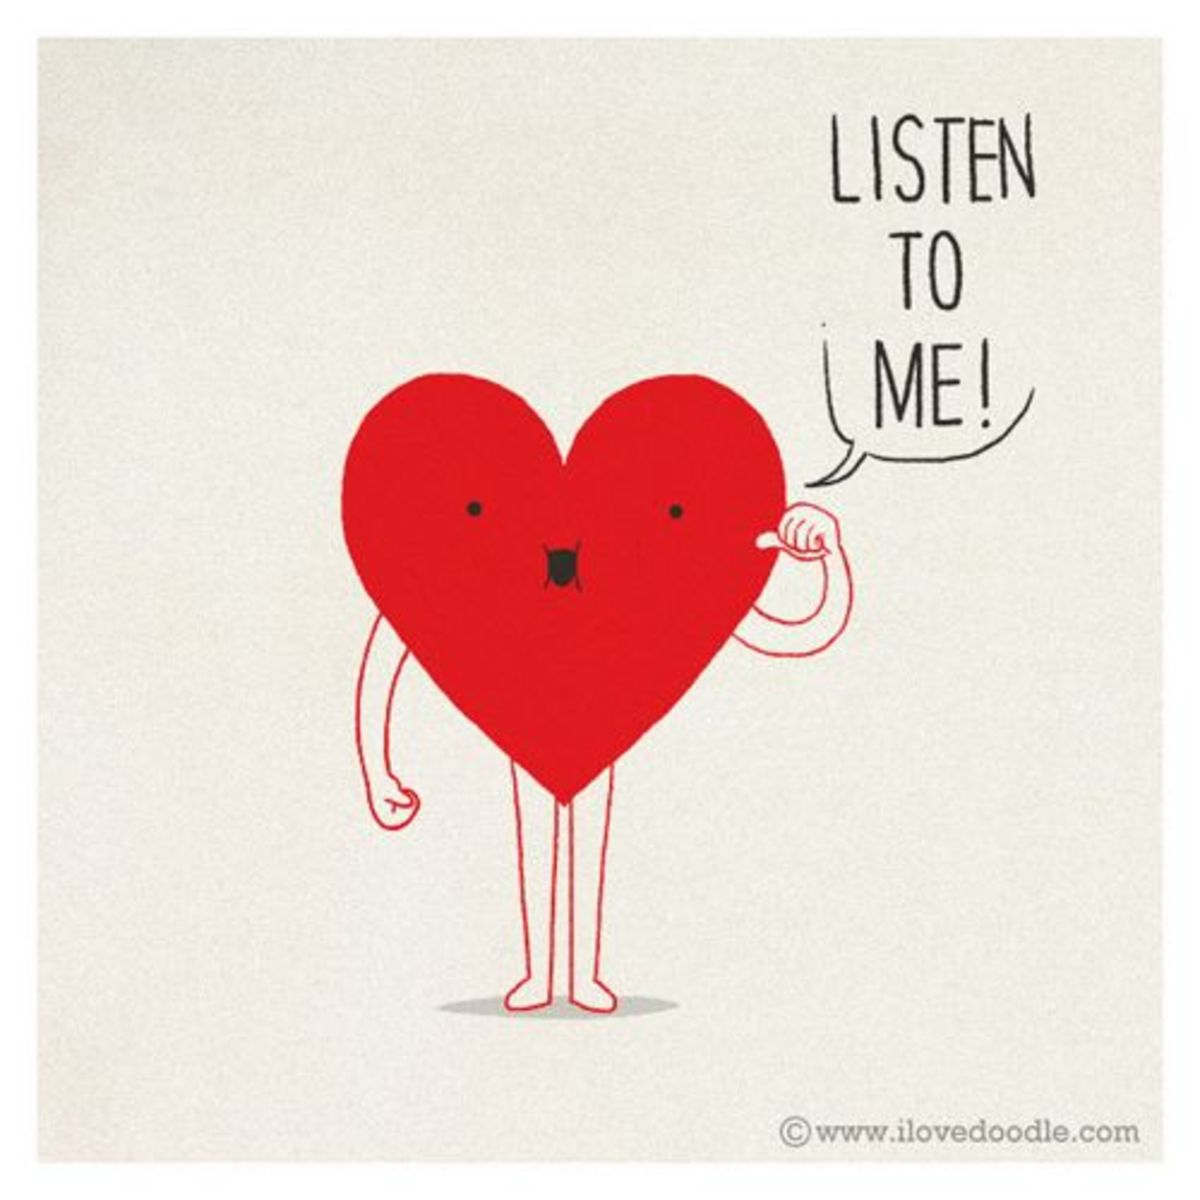 Always listen to your heart. Happy World Heart Day.